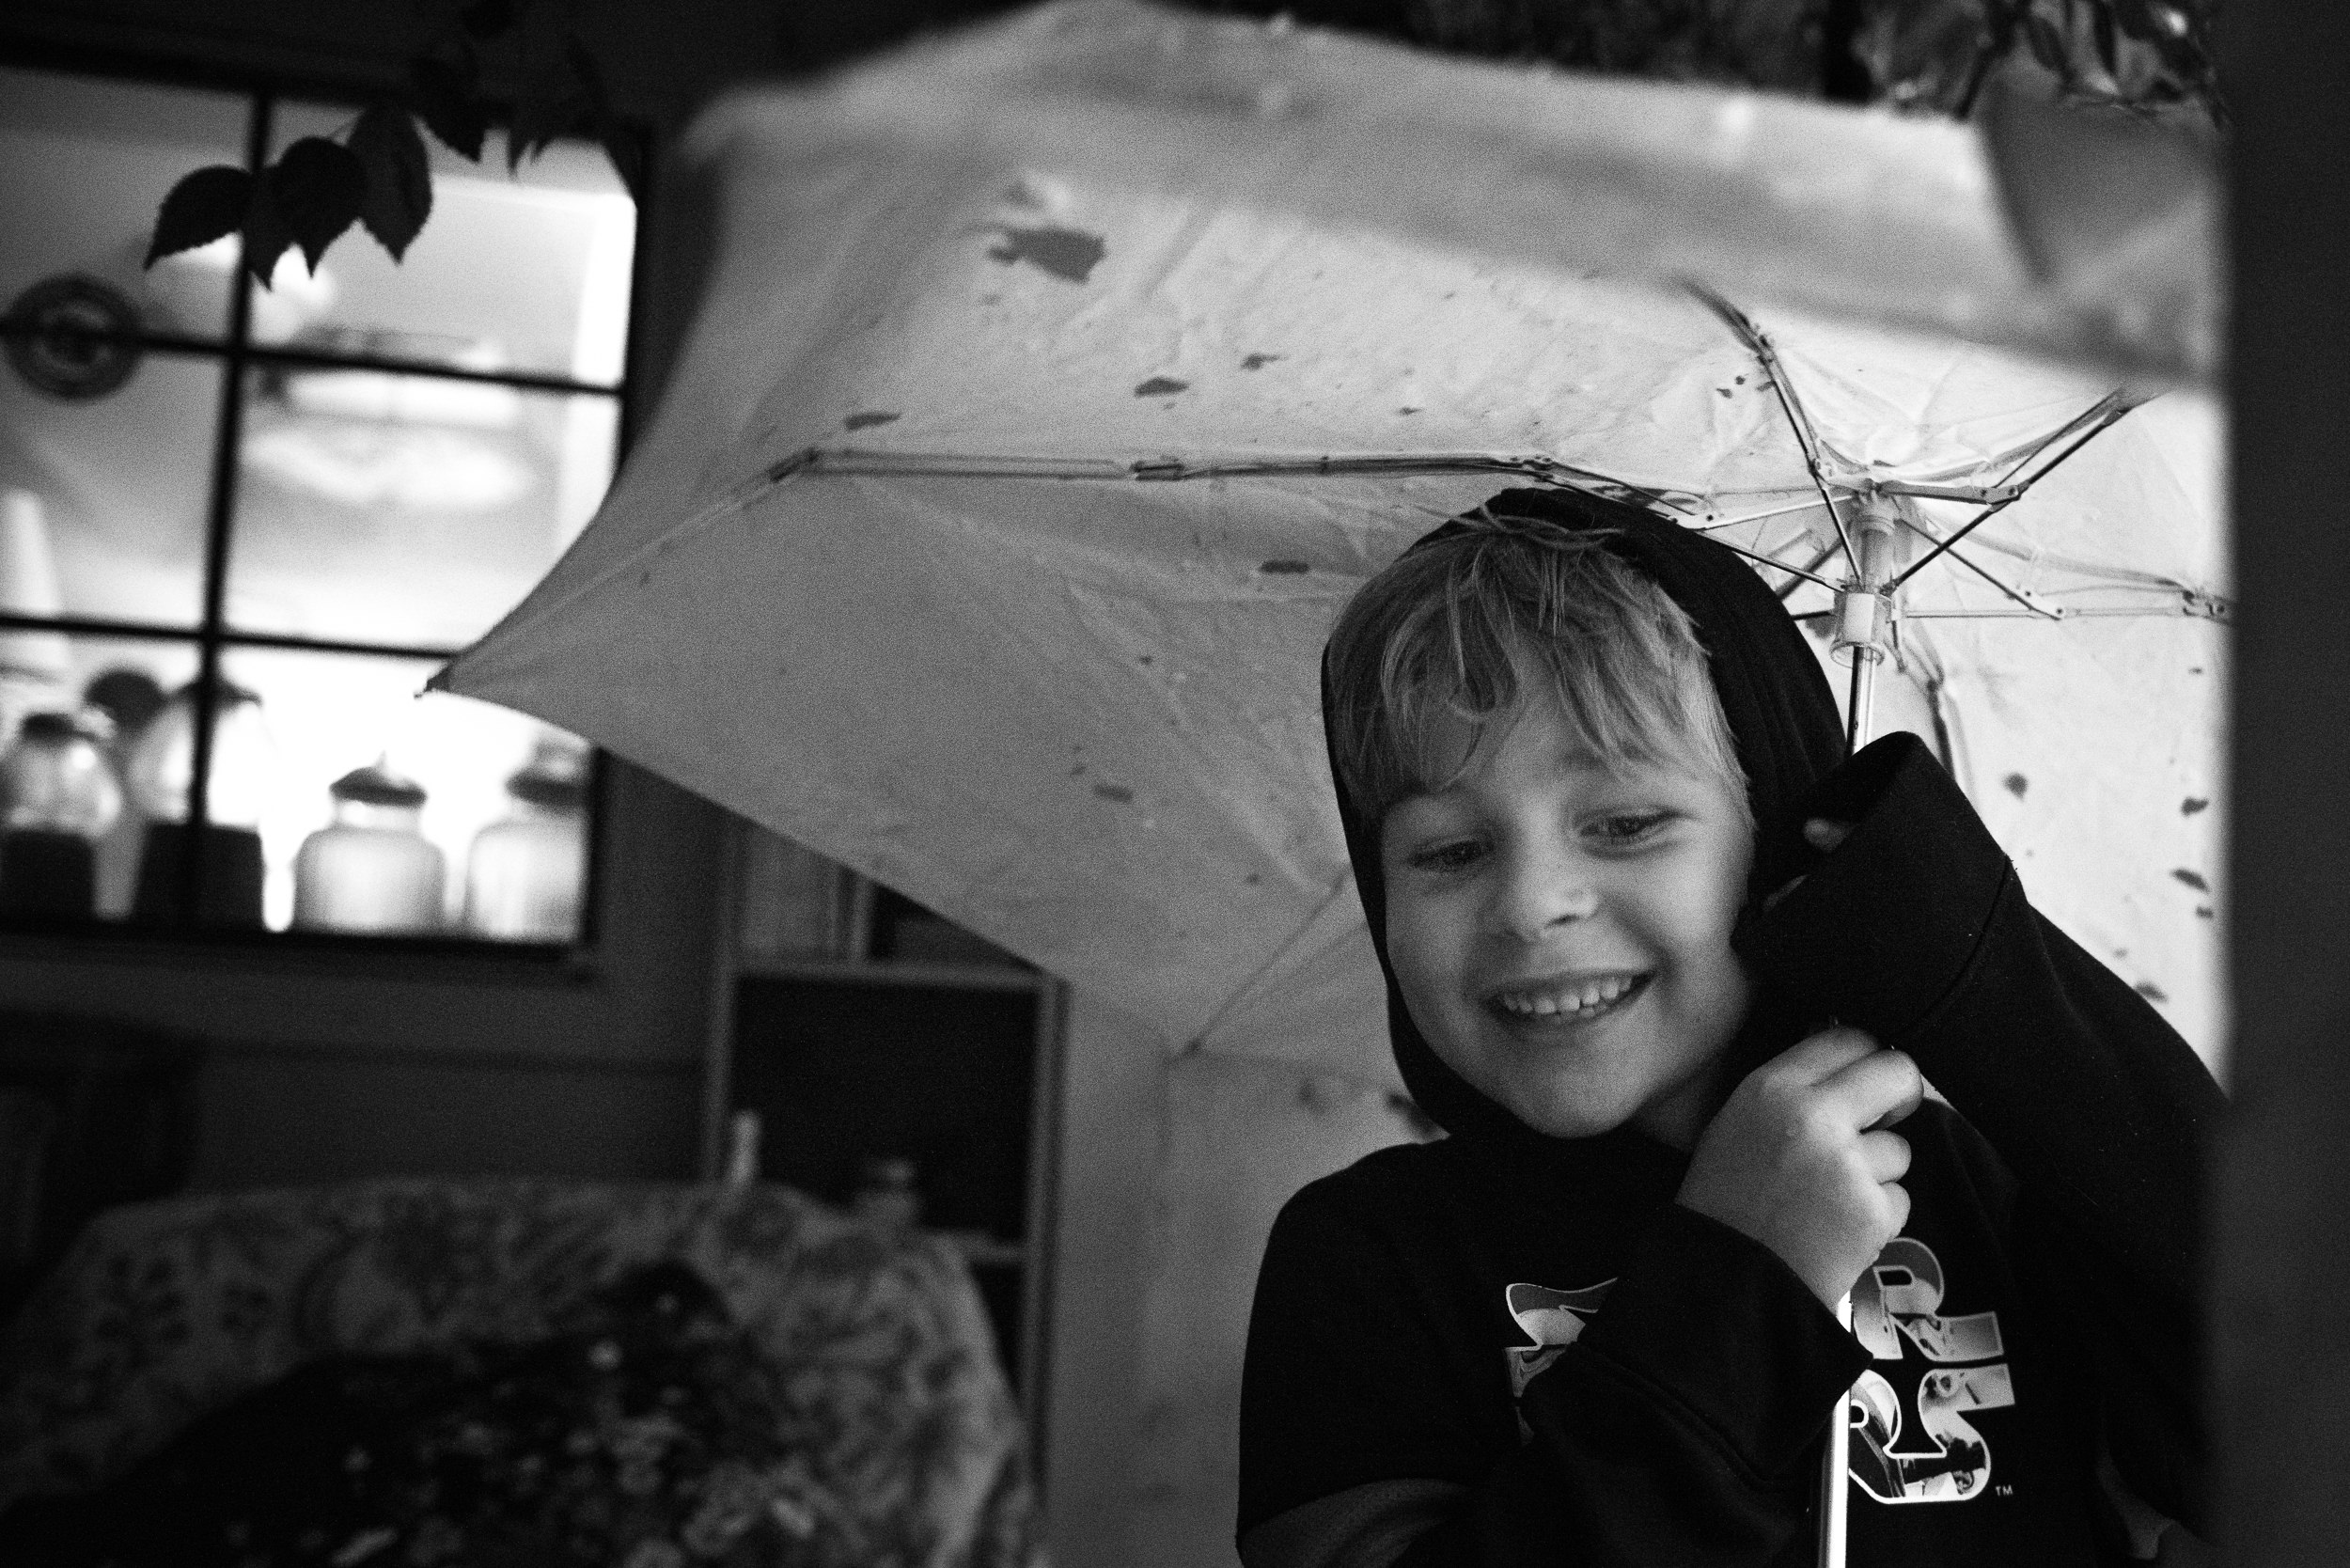 "Blog - The Pen & Camera - Poetry, Inspirational, Writing, Denver, Colorado -  Molly Rees Photo - Black and White Documentary Childhood Photography - boy with umbrella by M. Menschel ""Life will break you"" poem by Louise Erdrich"